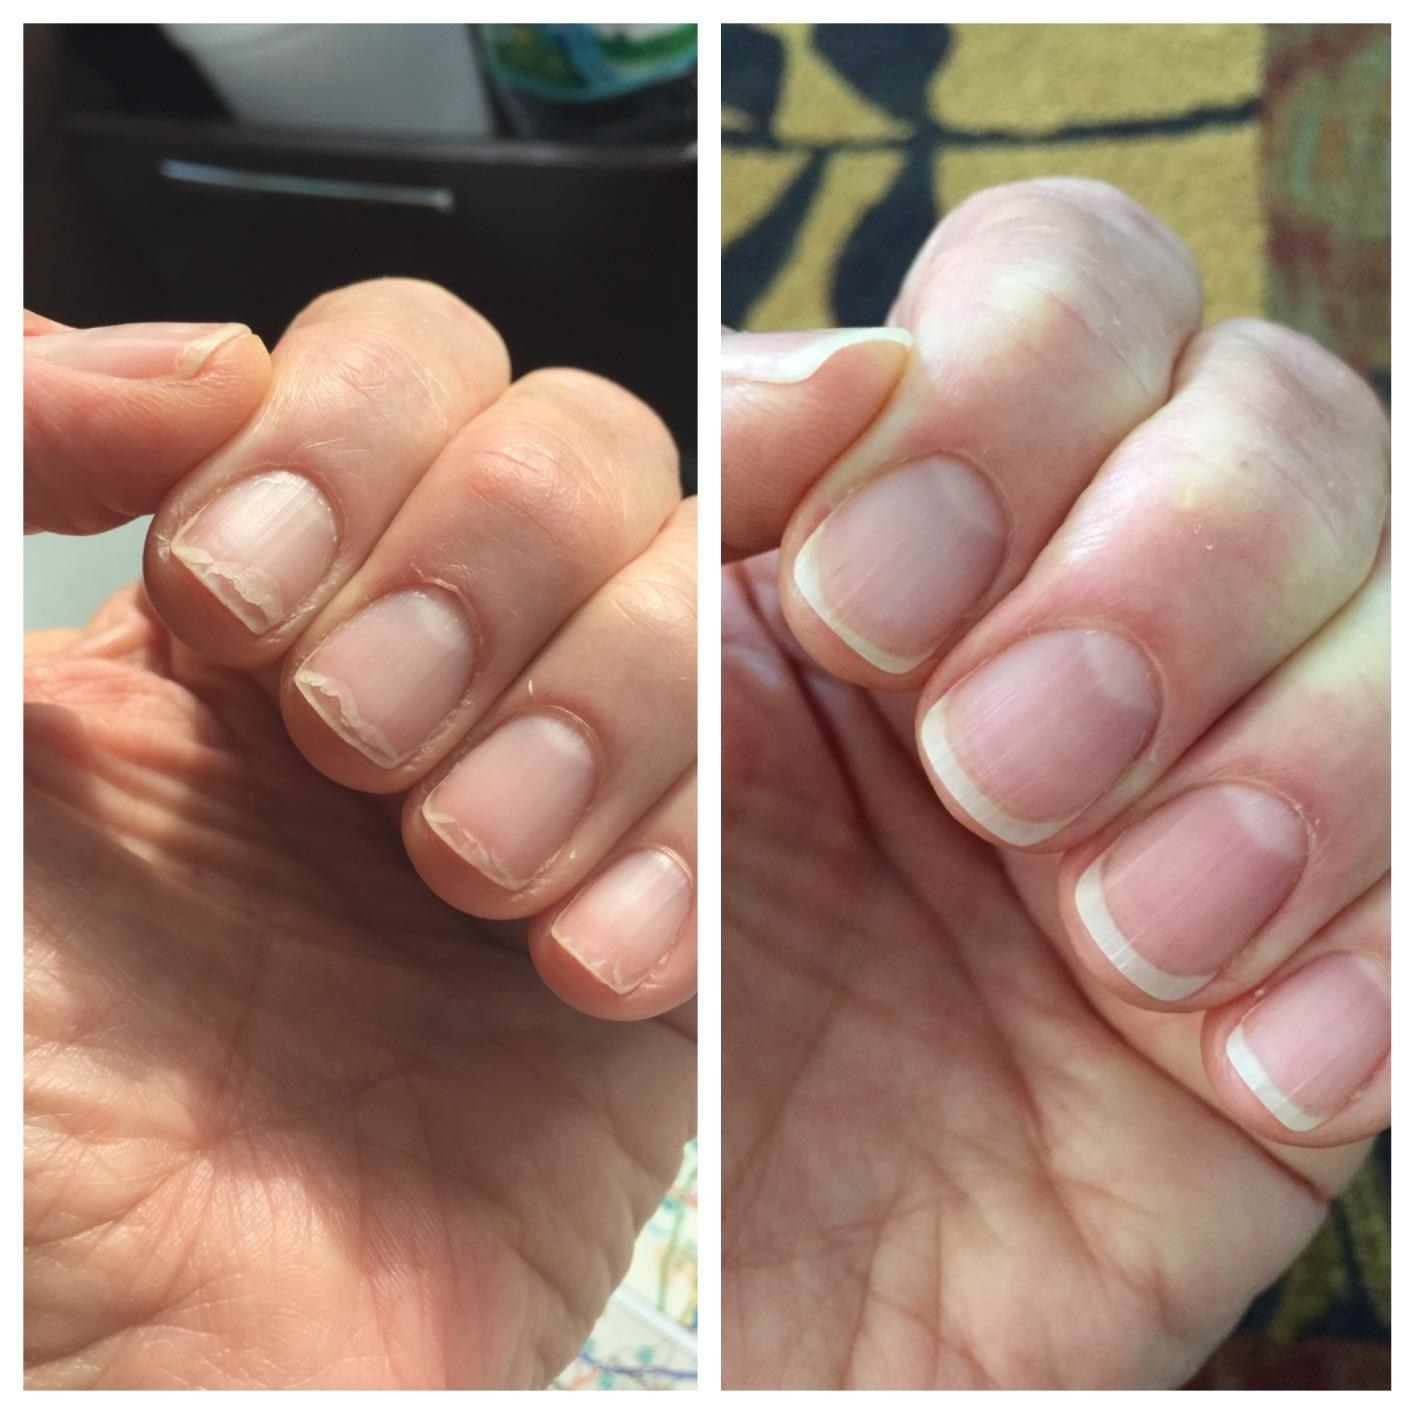 left: reviewer nails peeling right: nails looking more healthy